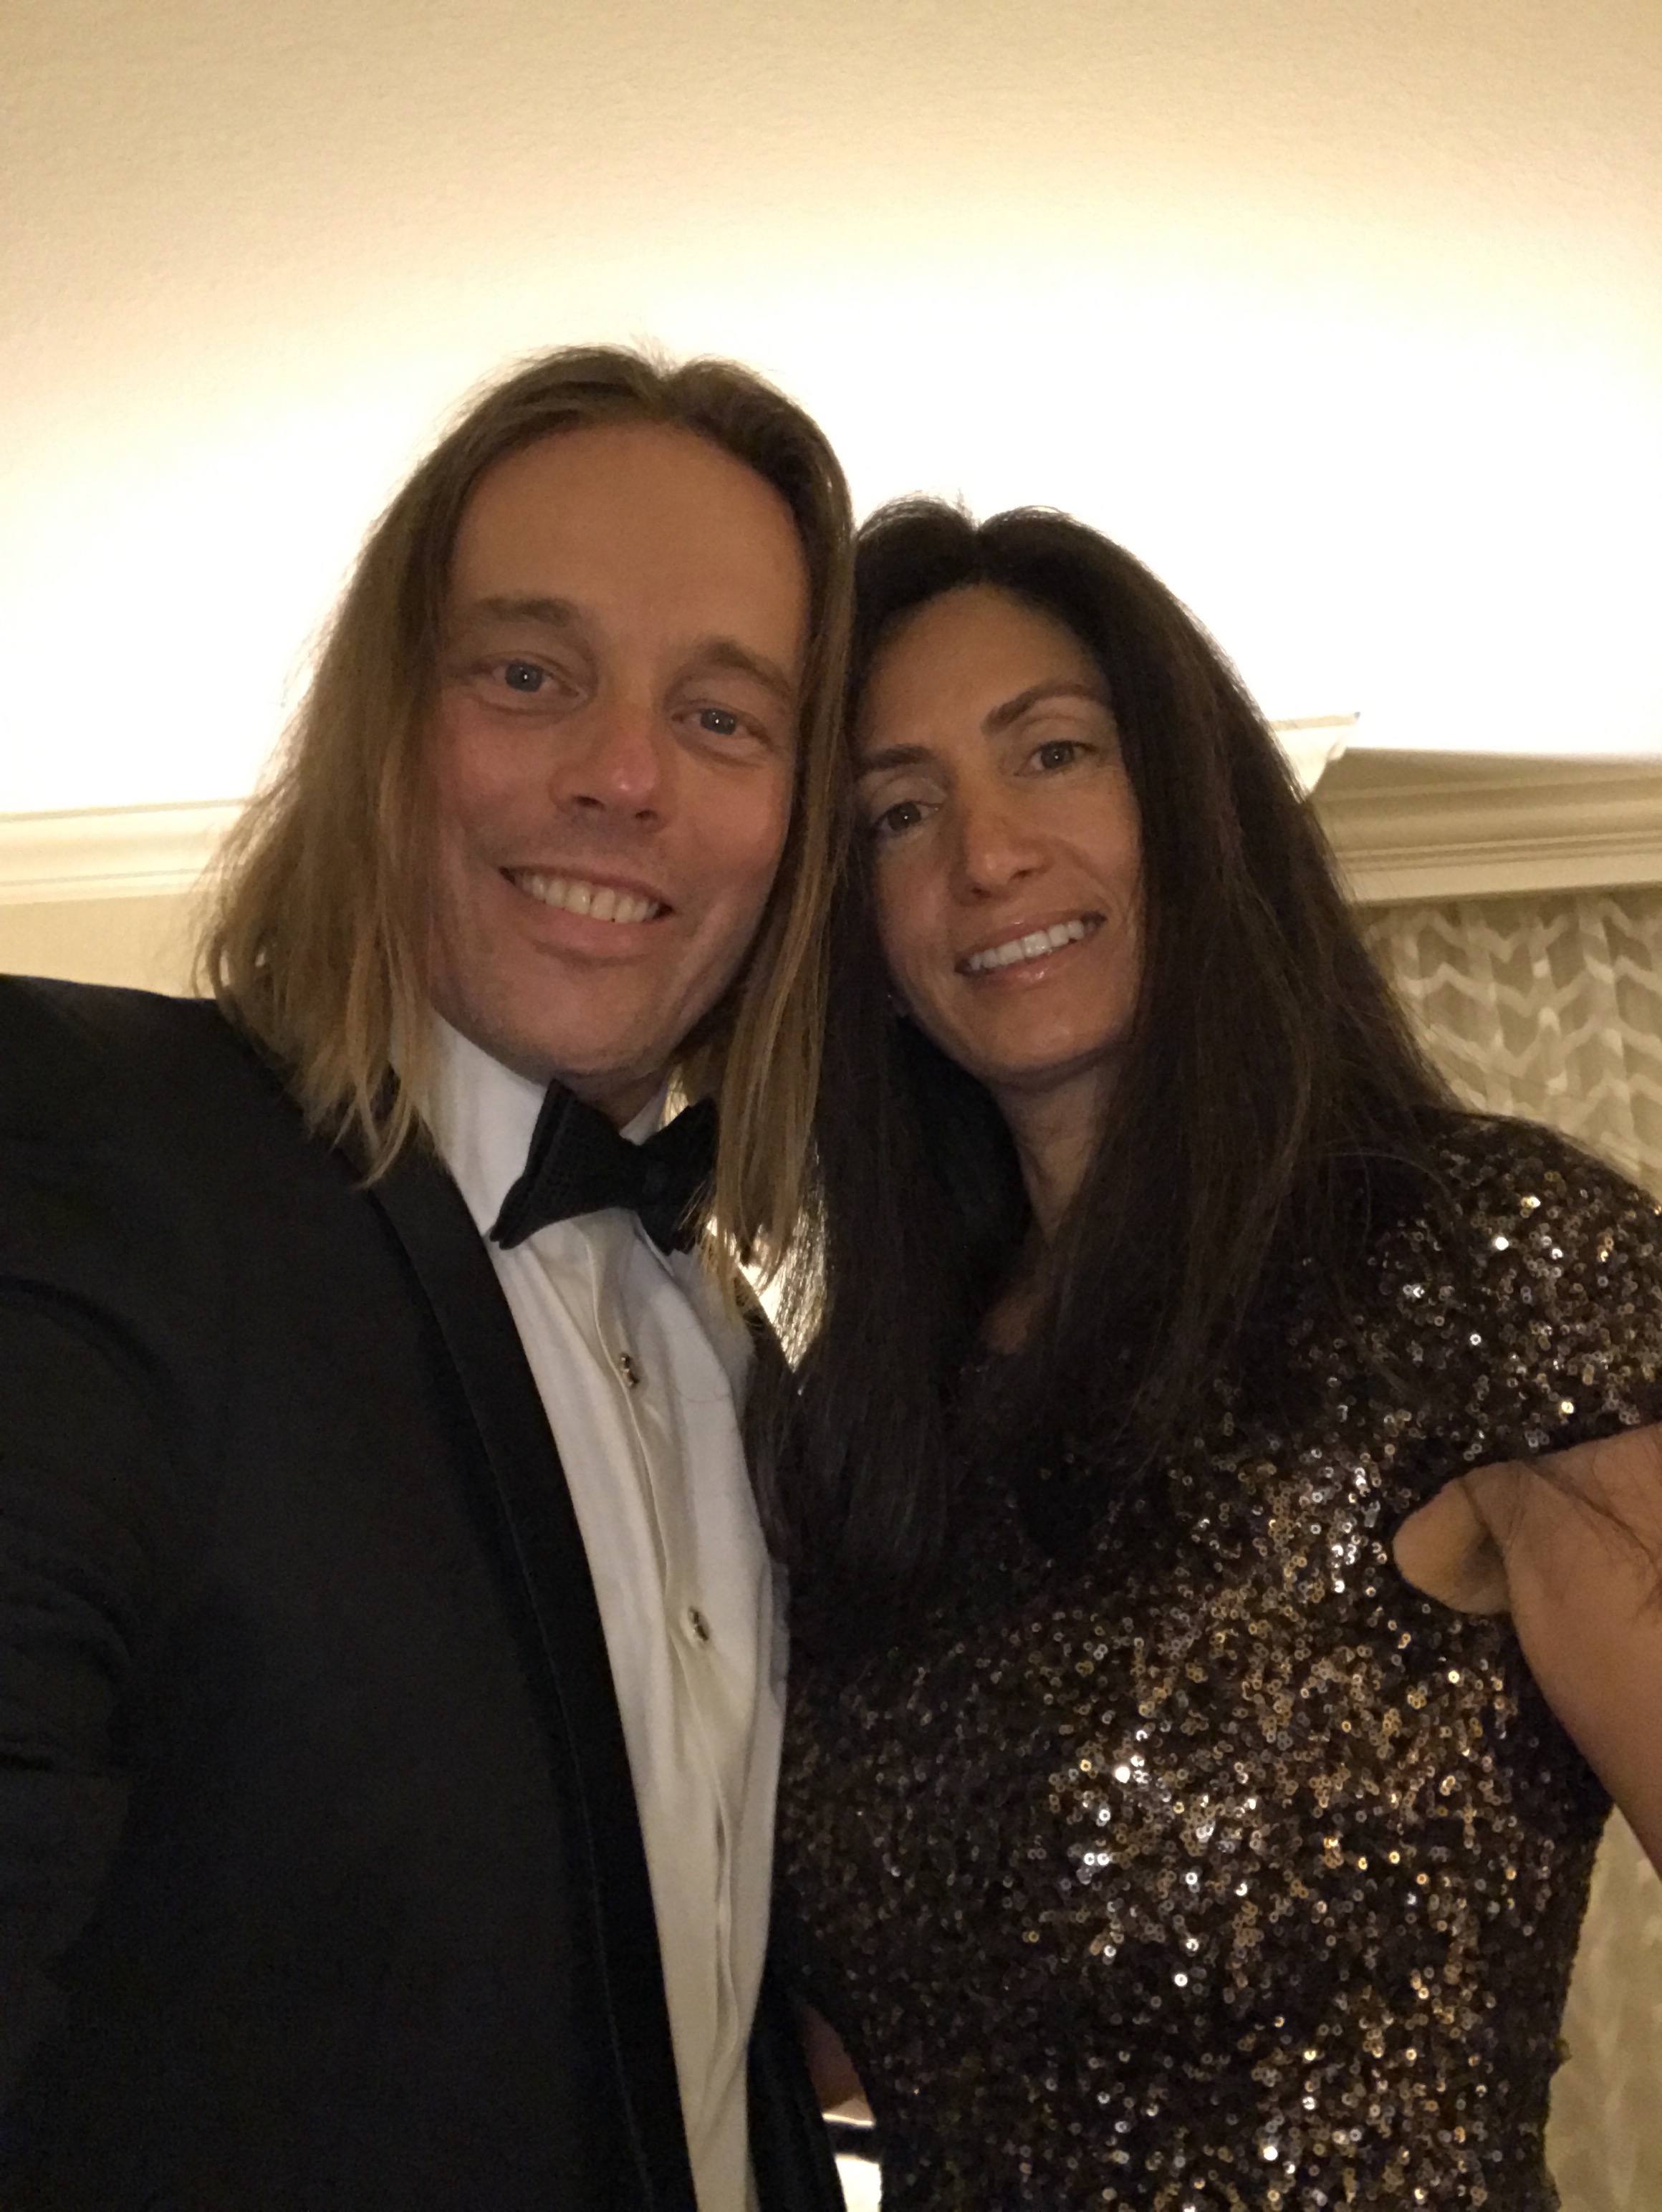 Dr. Edward Group III with his wife Dr. Daniela Group before The Truth About Cancer Symposium Gala.